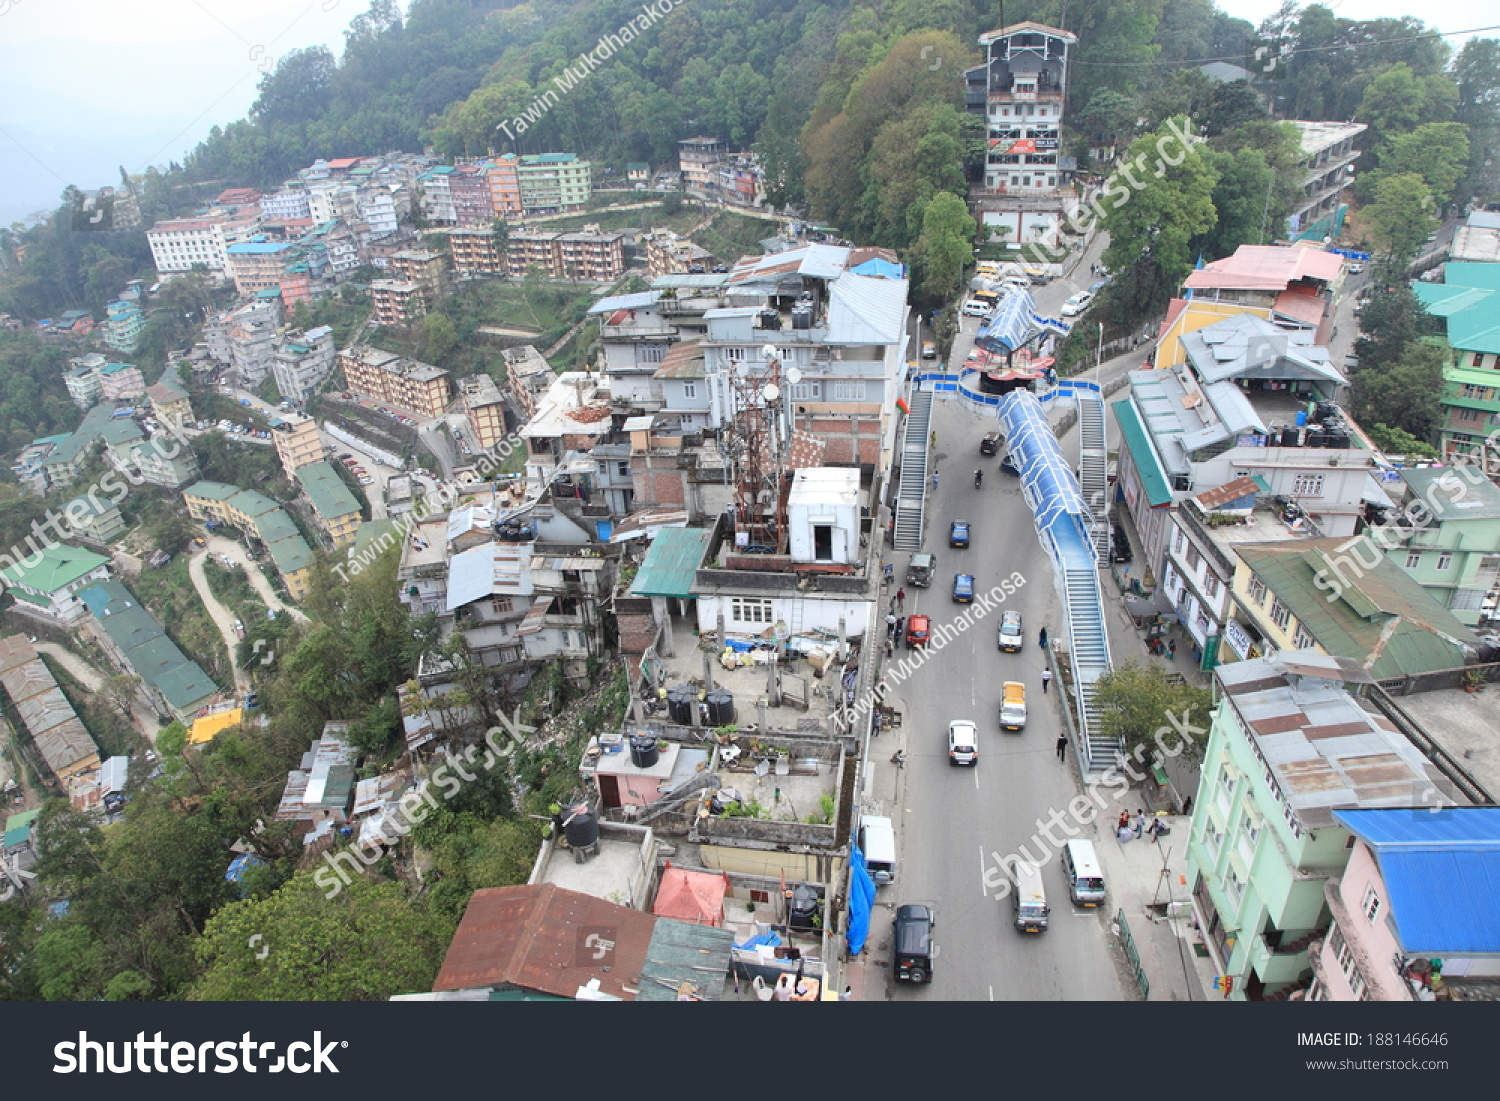 SIKKIM, INDIA GOES FULLY ORGANIC, BYE BYE GMO'S! - News By 2News By 2